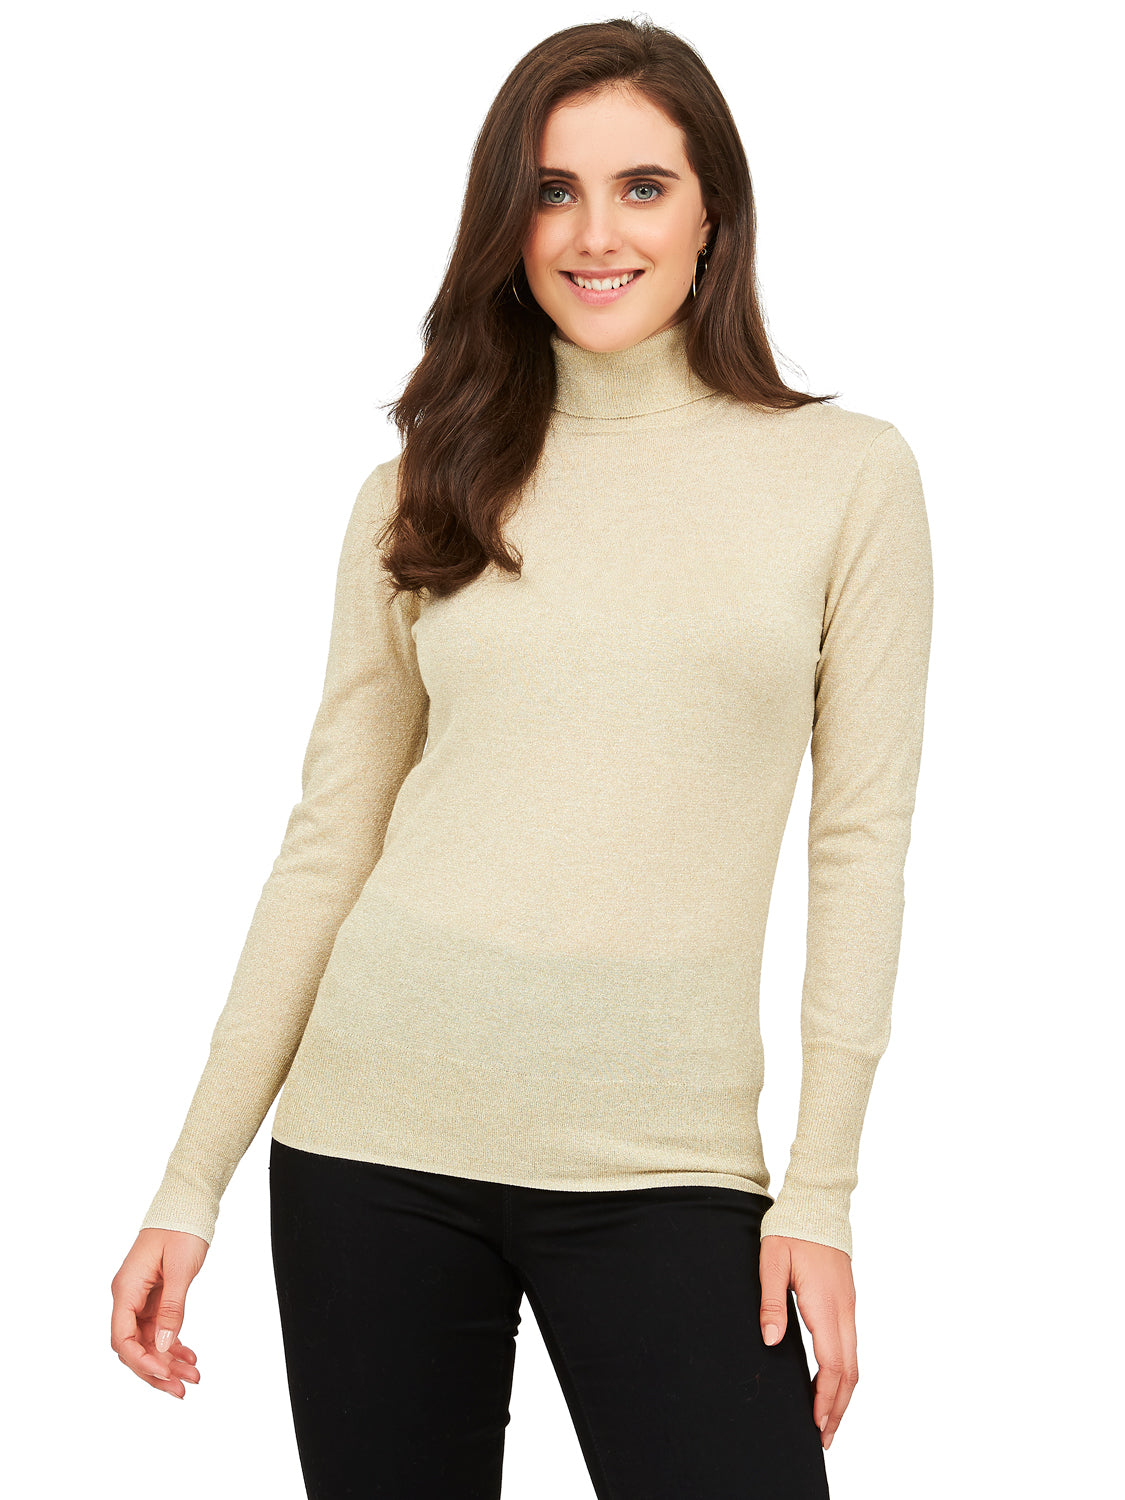 Long Sleeve Metallic Knit Turtleneck